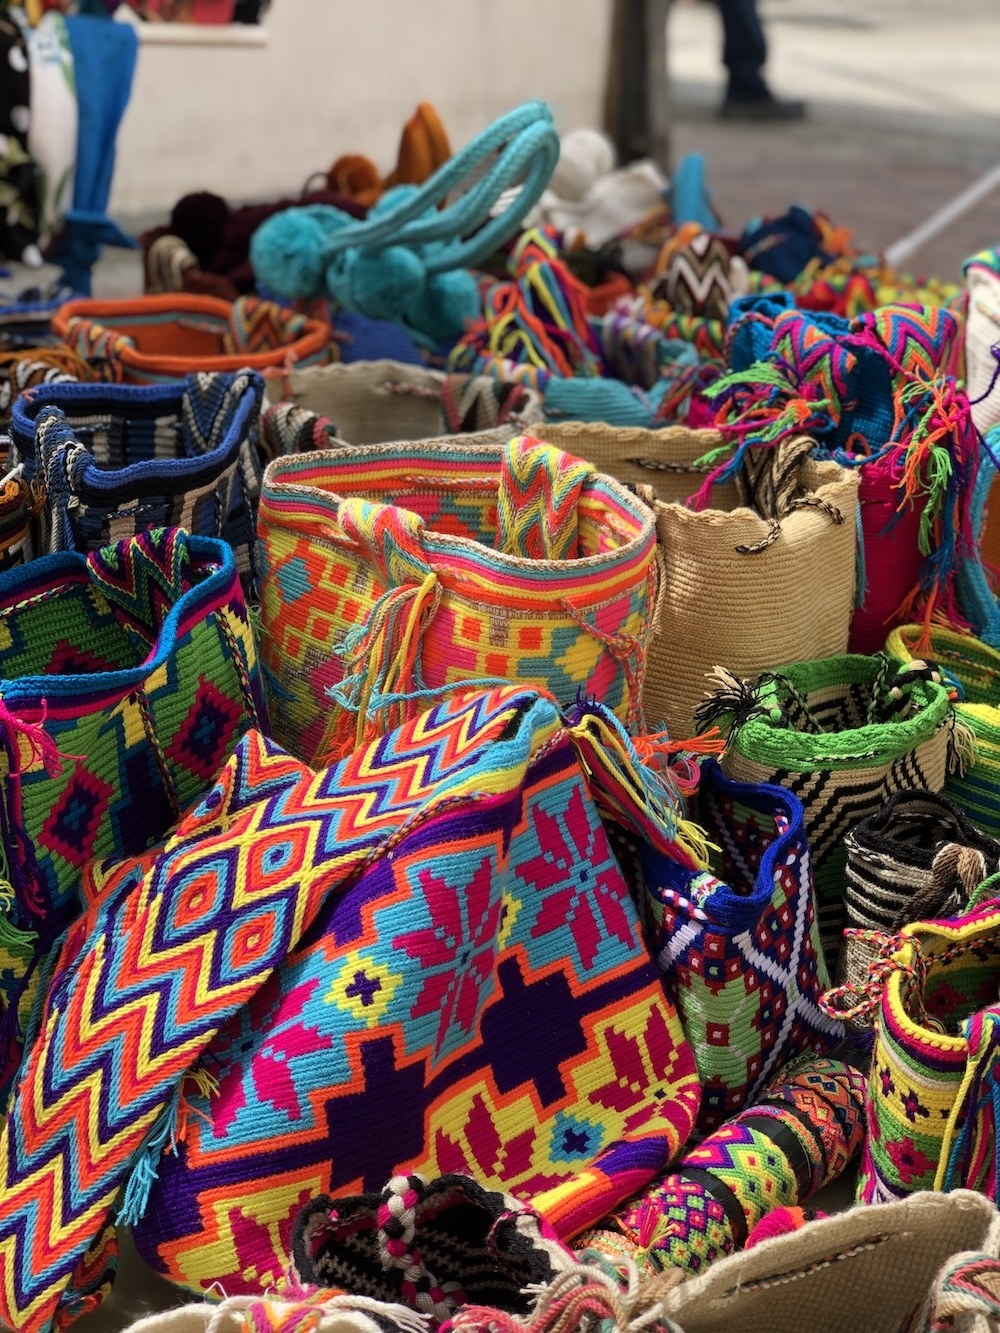 And markets filled with colorful bags.